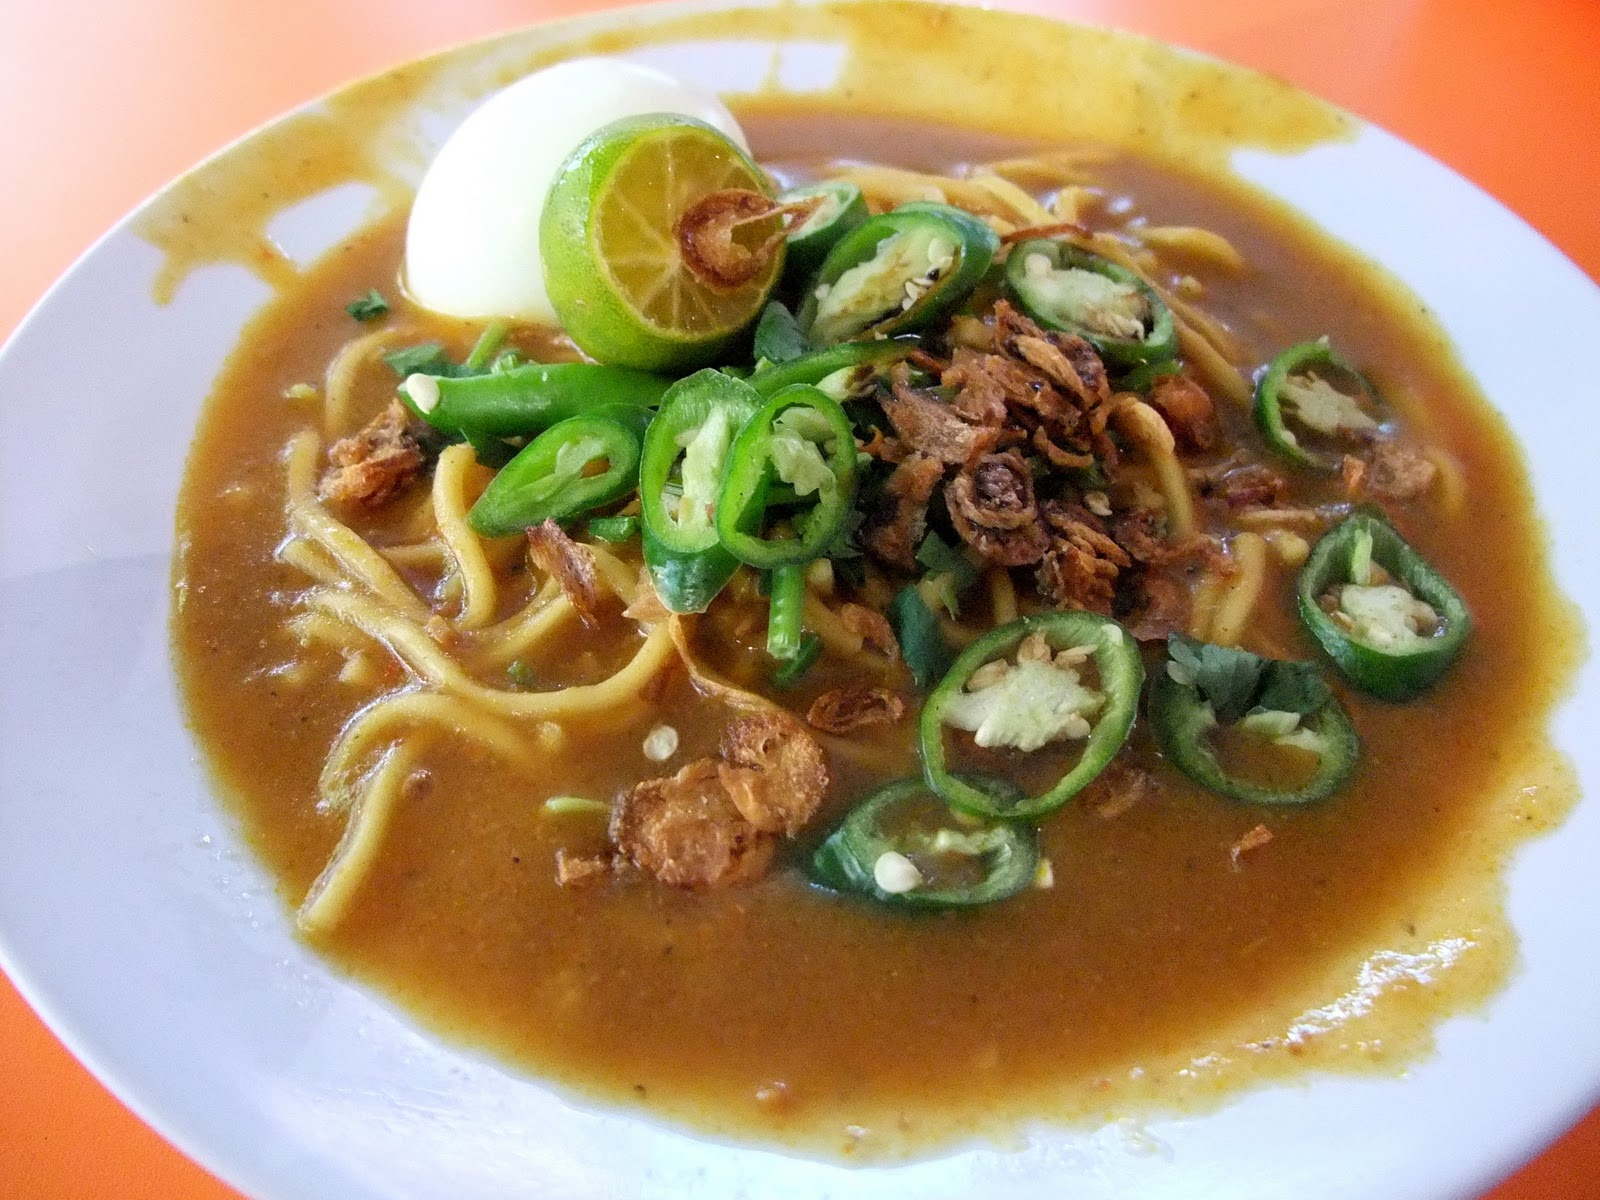 ... were opened.Waited close to a year,to have my favourite Mee Rebus